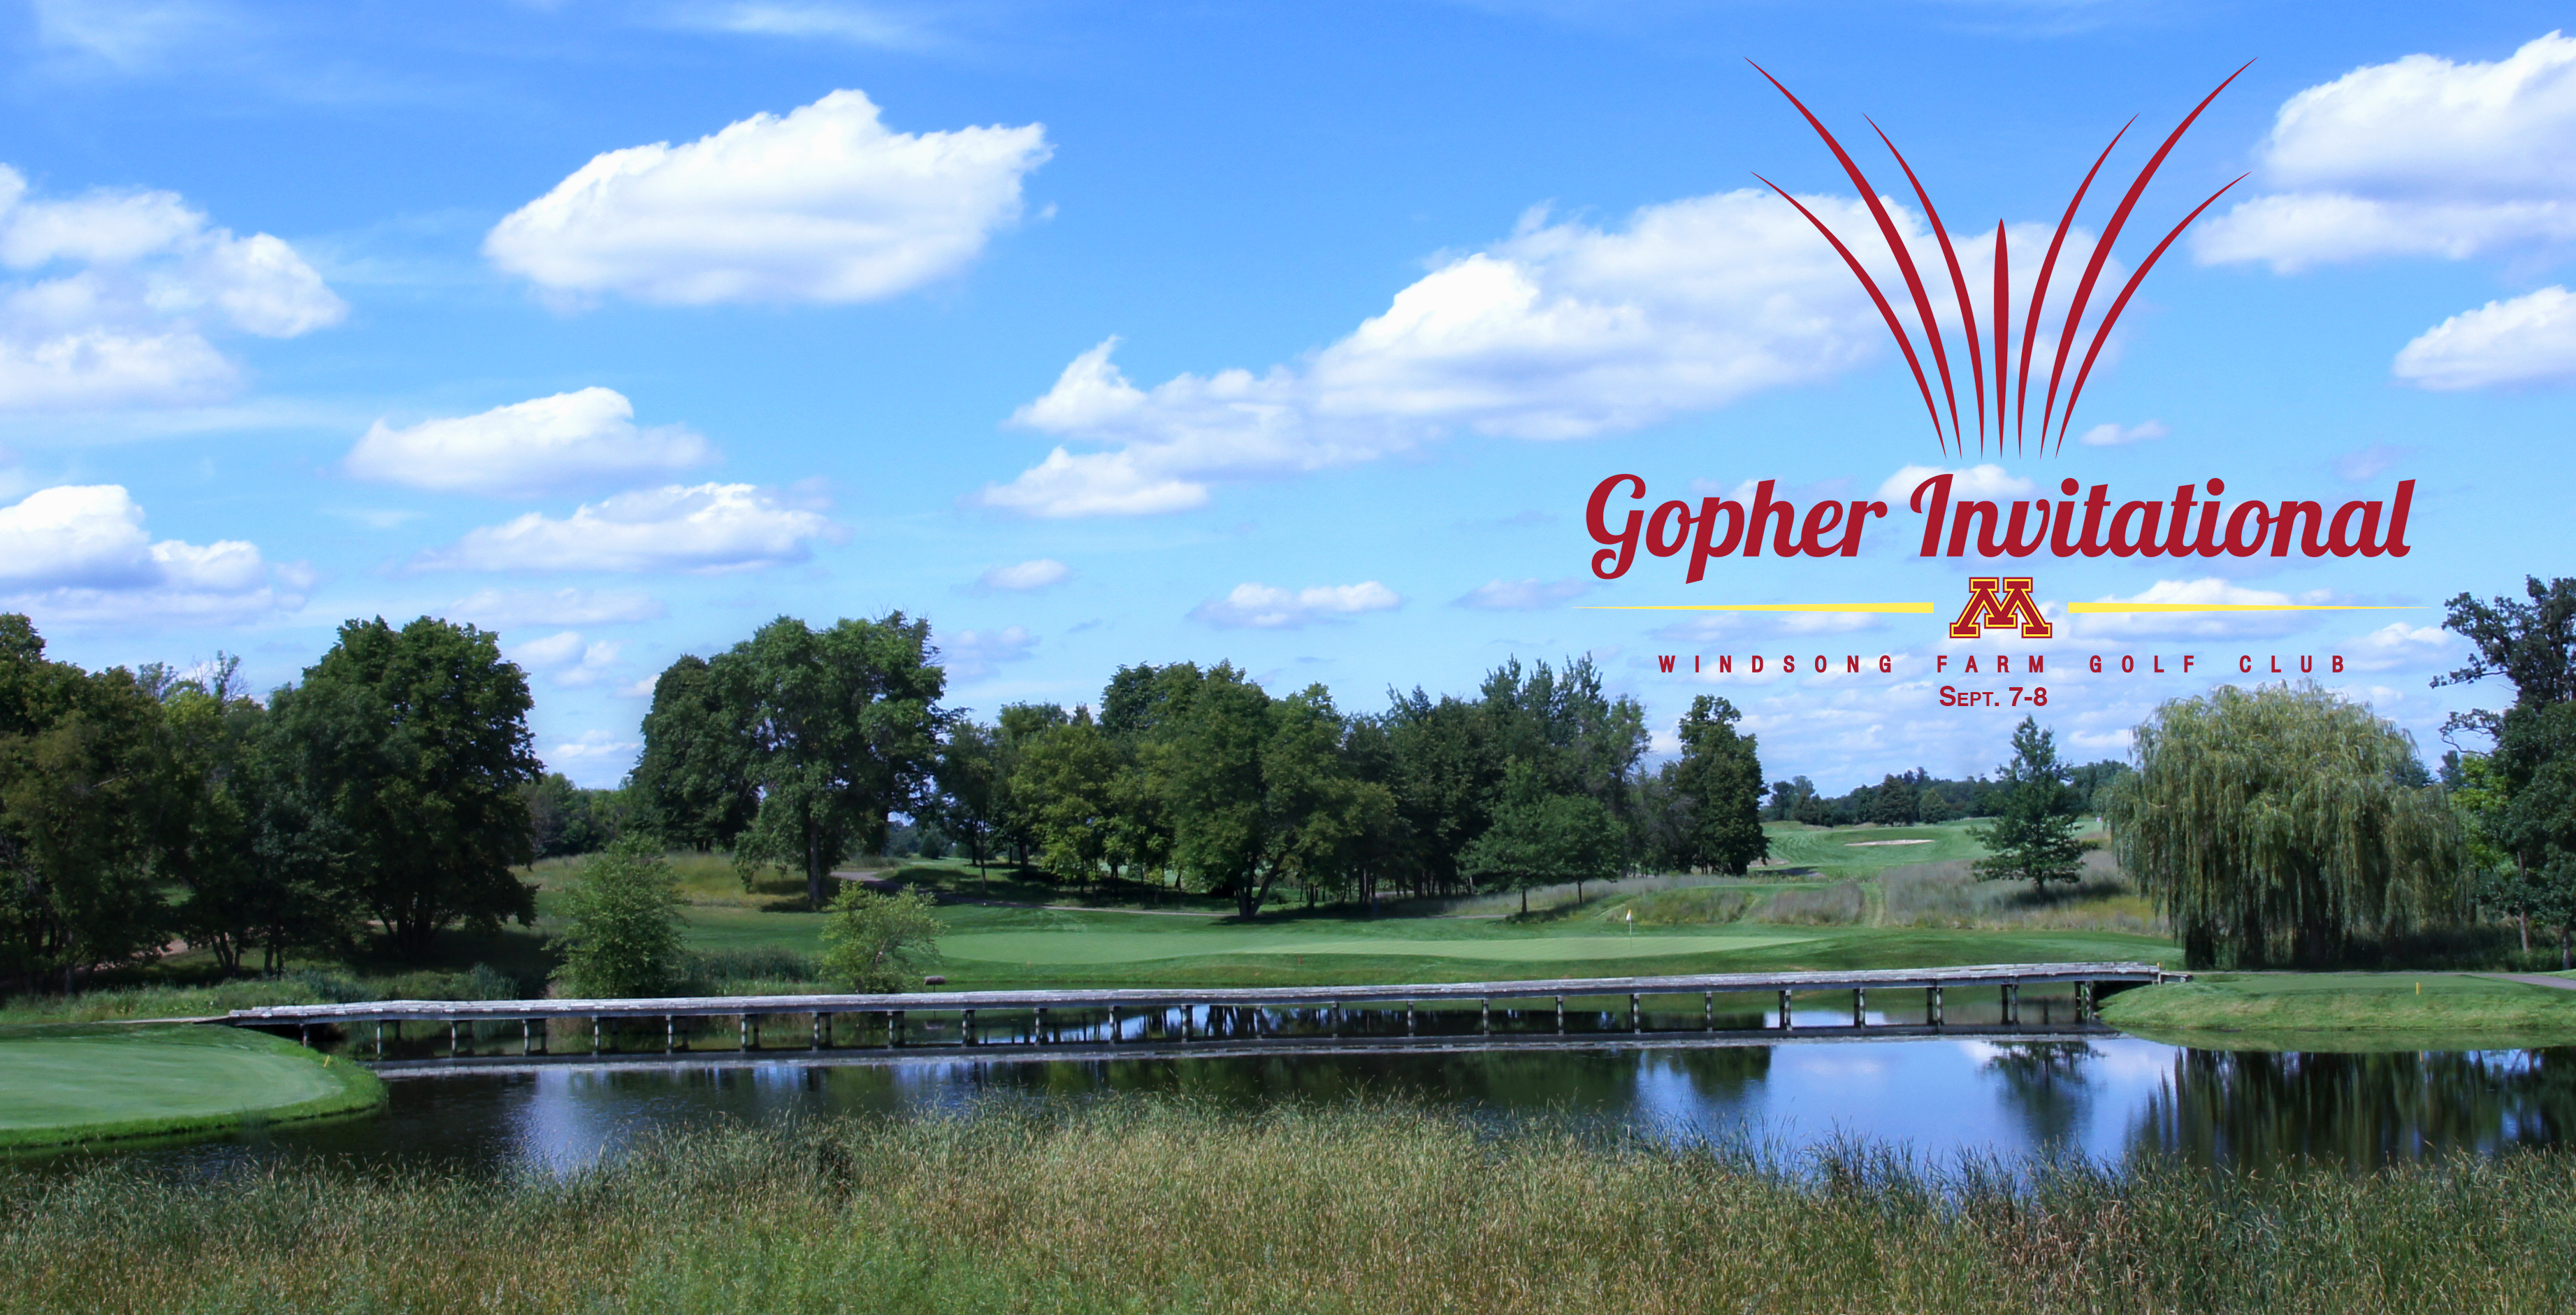 Gopher Invitational Tough Entrance Exam for U Golf Year